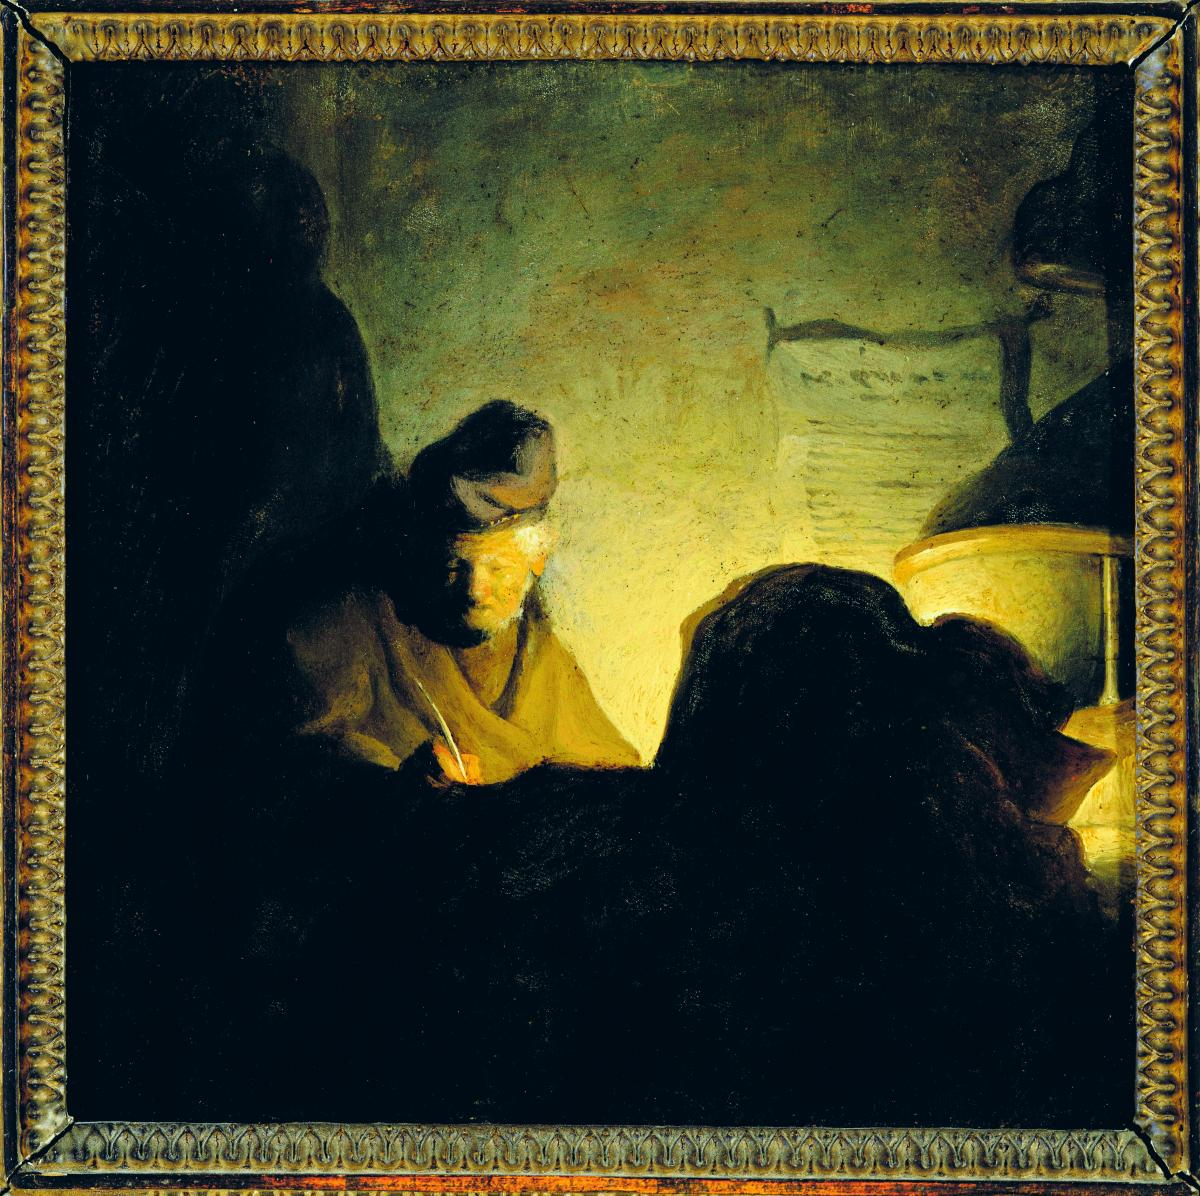 [photo of  Scholar by Candlelight, a painting by Rembrandt or one of his circle]